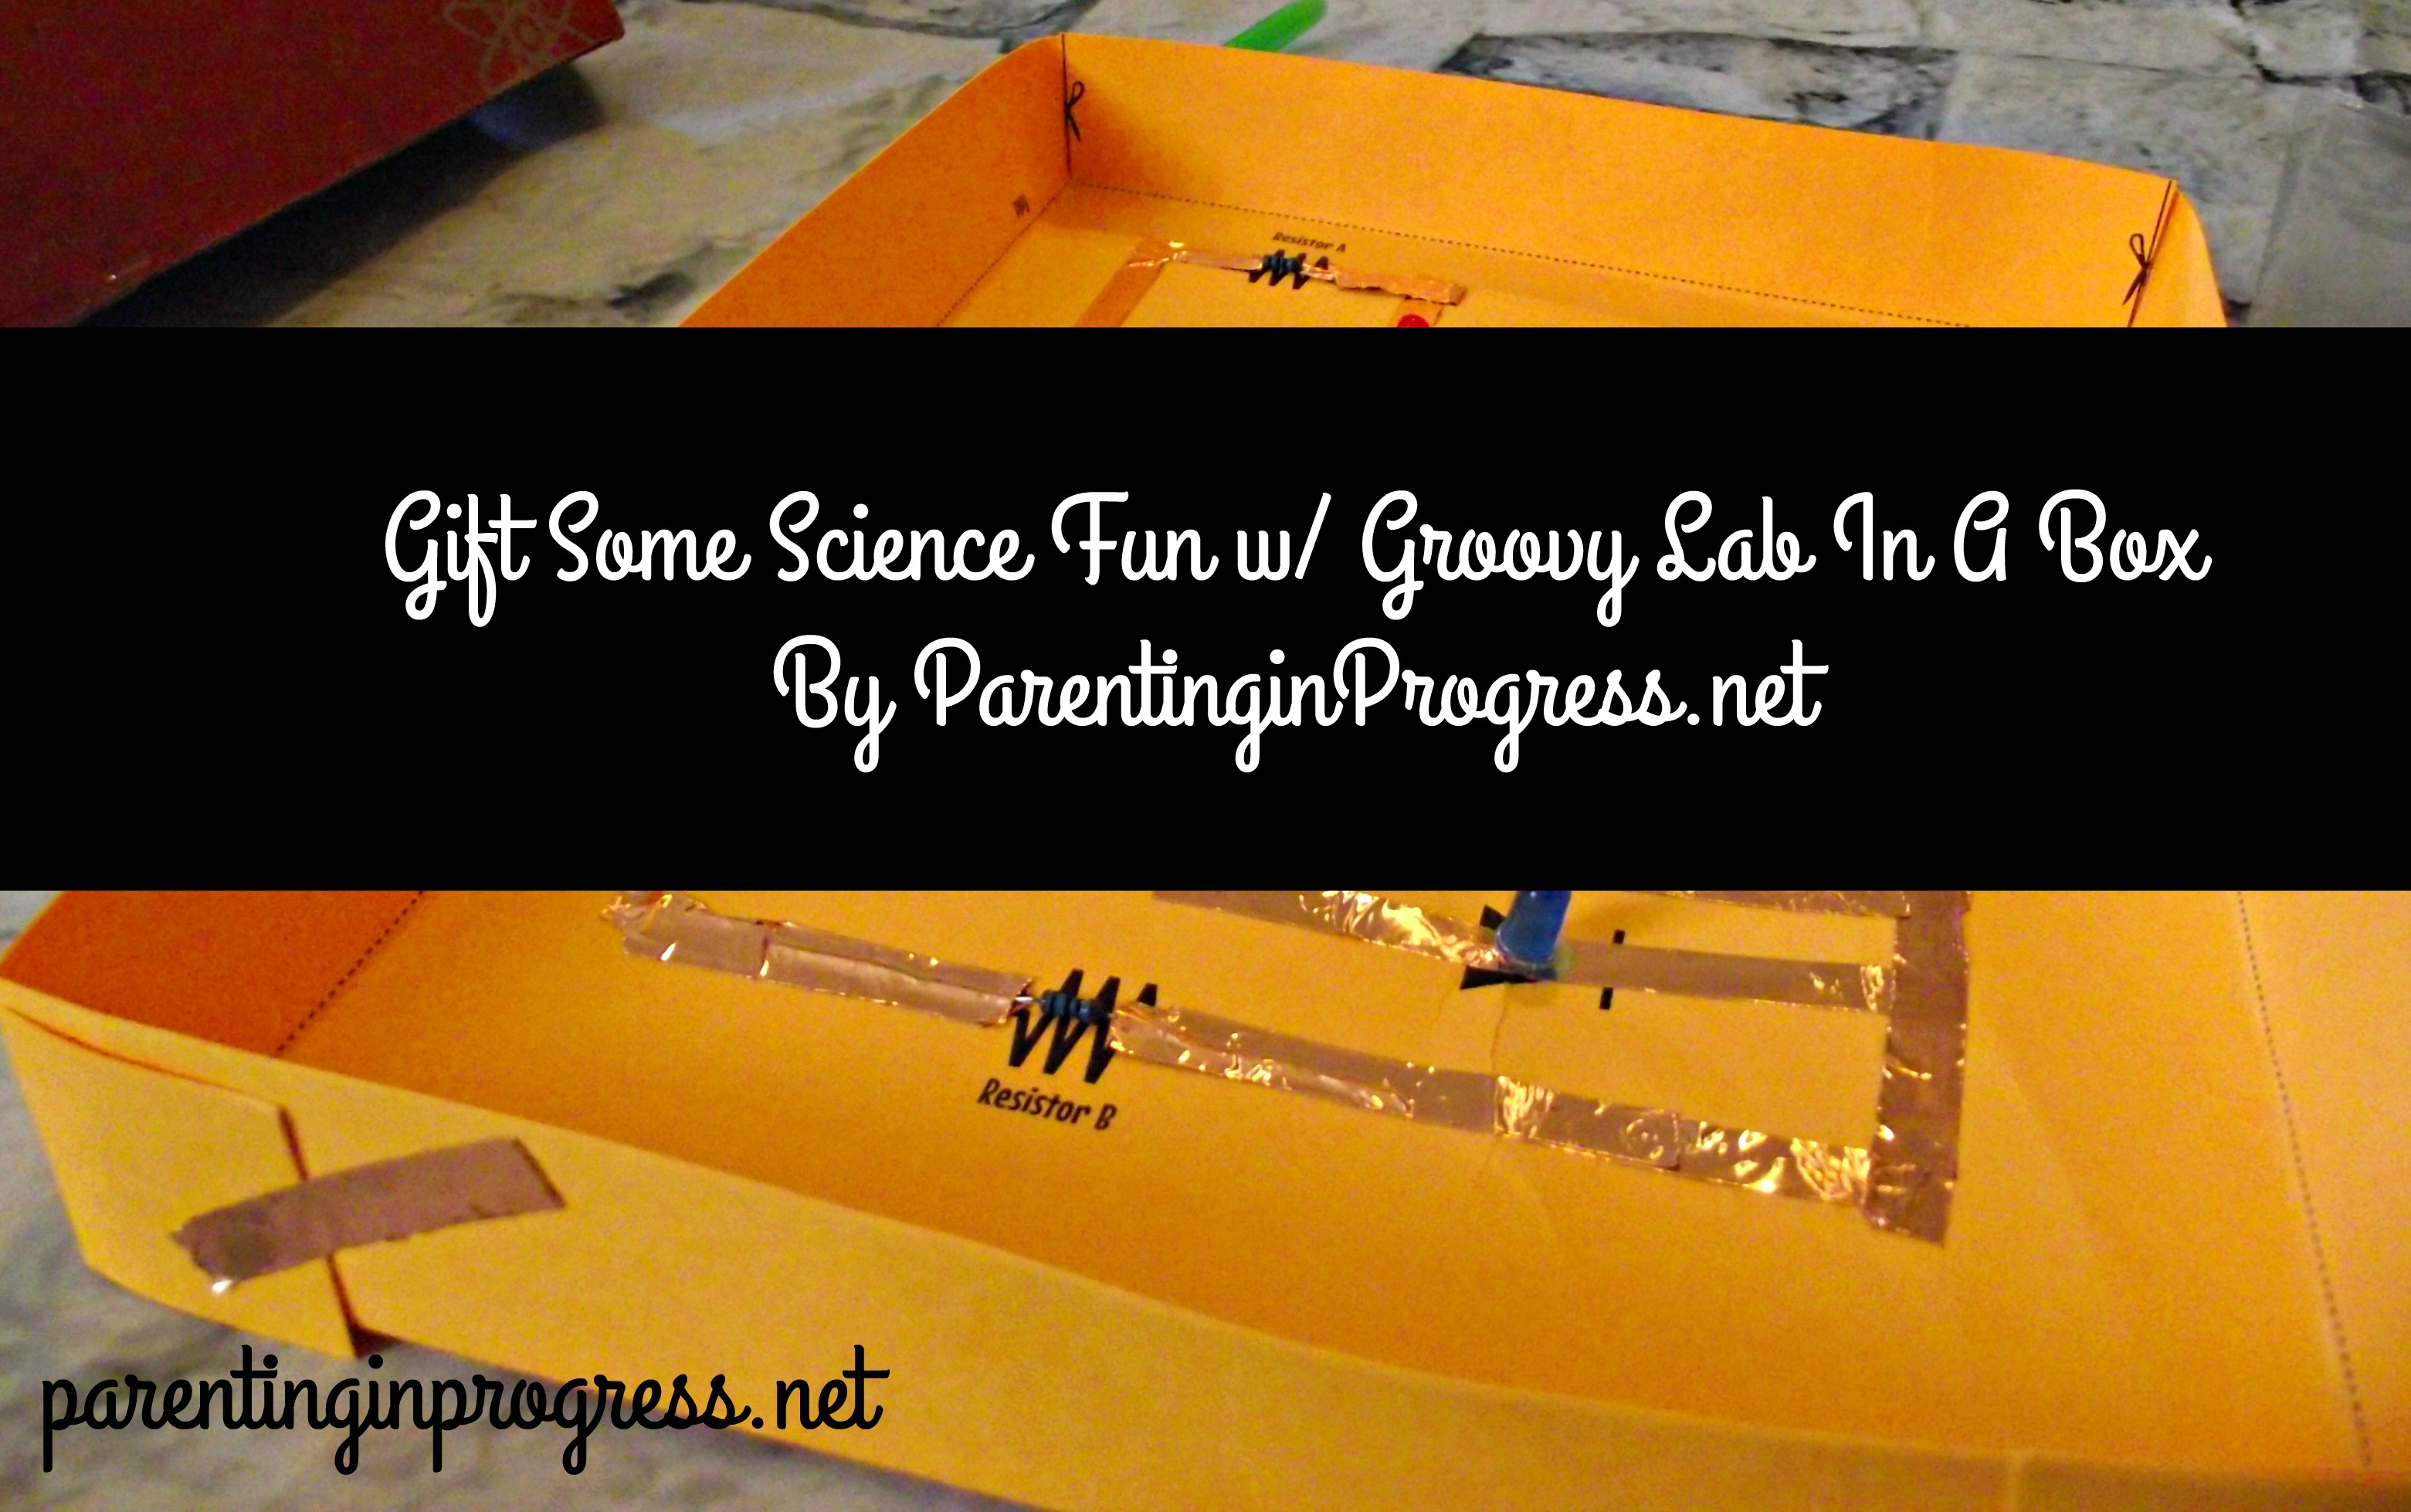 Gift Some Science Fun w/ Groovy Lab In a Box